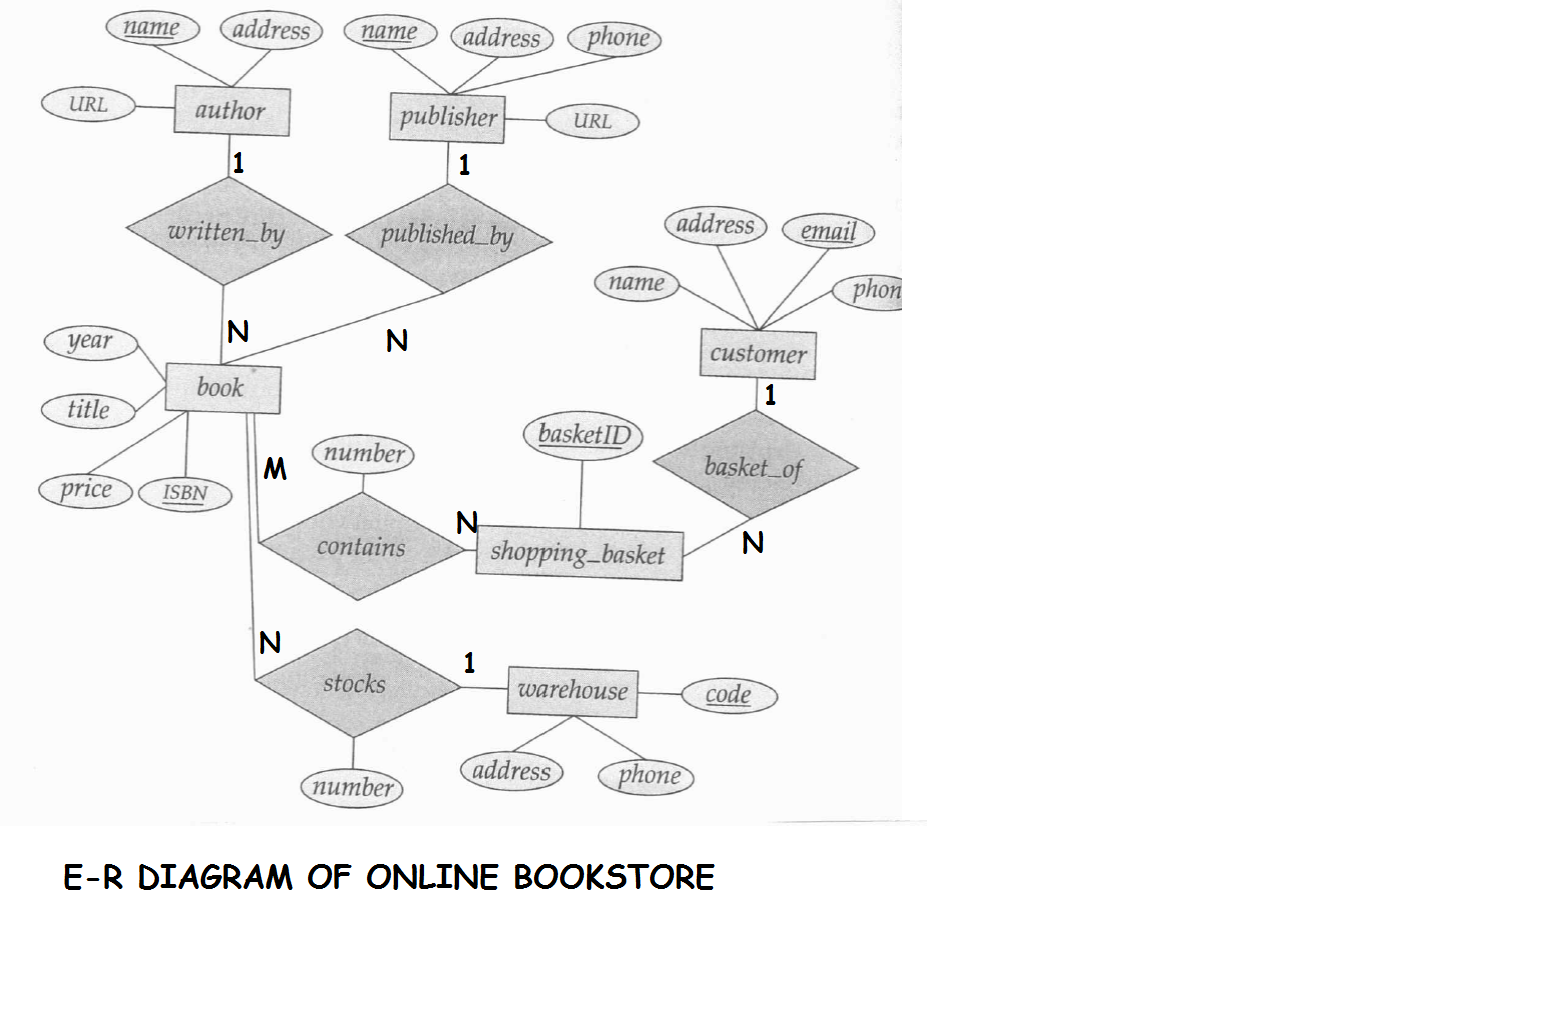 database er diagram for courier management system 1999 mustang wiring leave free engine image